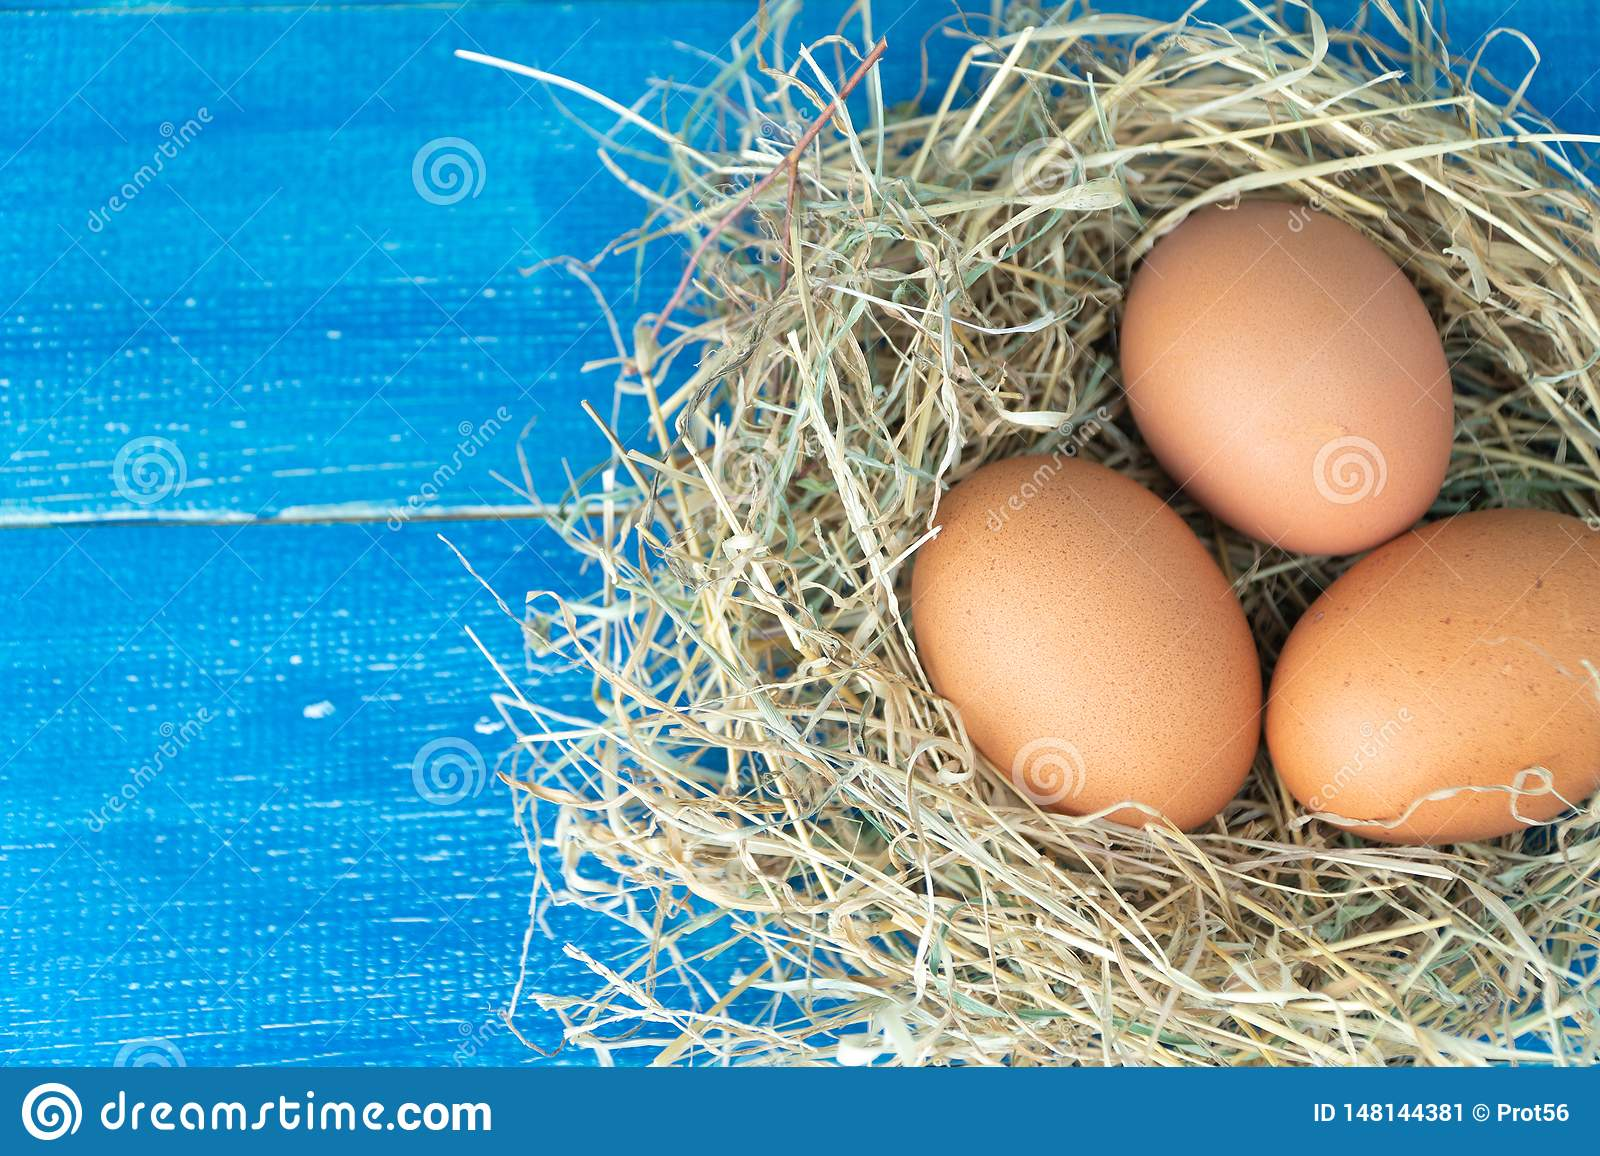 Close up of fresh brown chicken eggs in hay nest on blue wooden background. Concept of organic eggs, free space for text or other